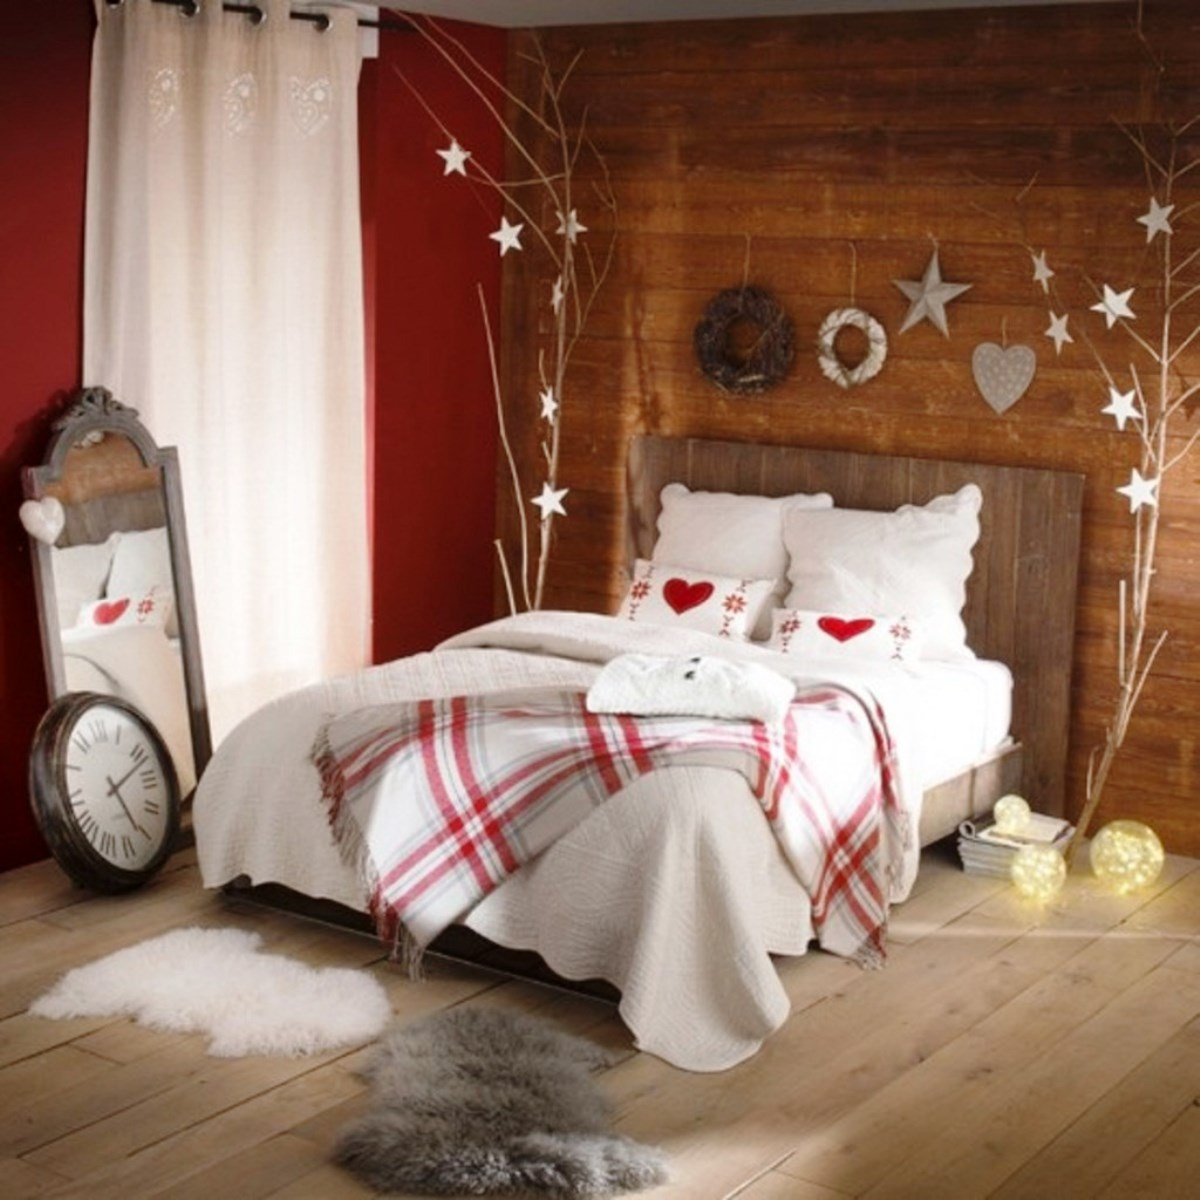 Bedroom Decoration 30 Christmas Bedroom Decorations Ideas